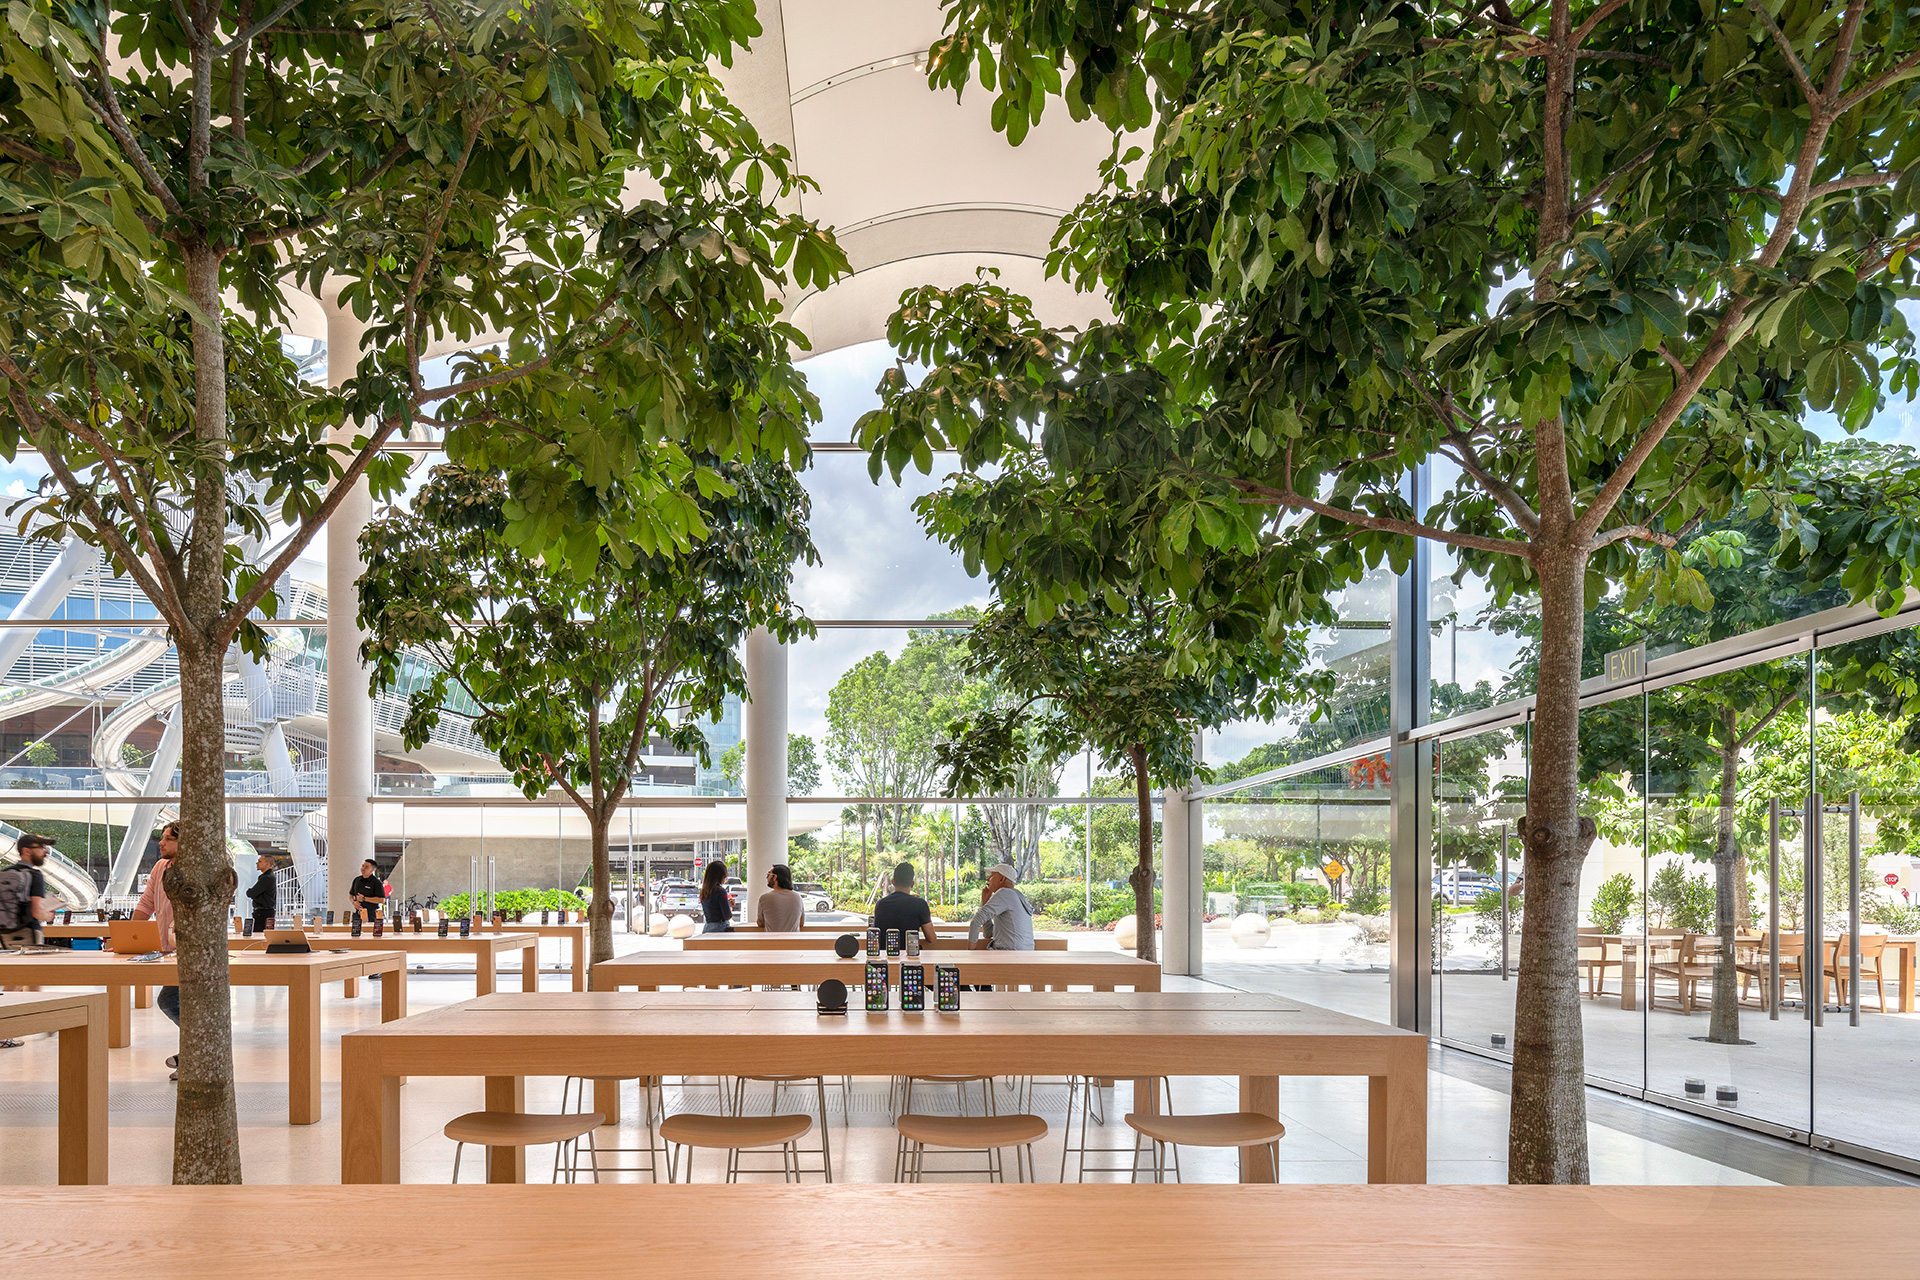 Inside Apple Aventura, with teak furniture and trees | Apple Aventura | Foster + Partners | STIR